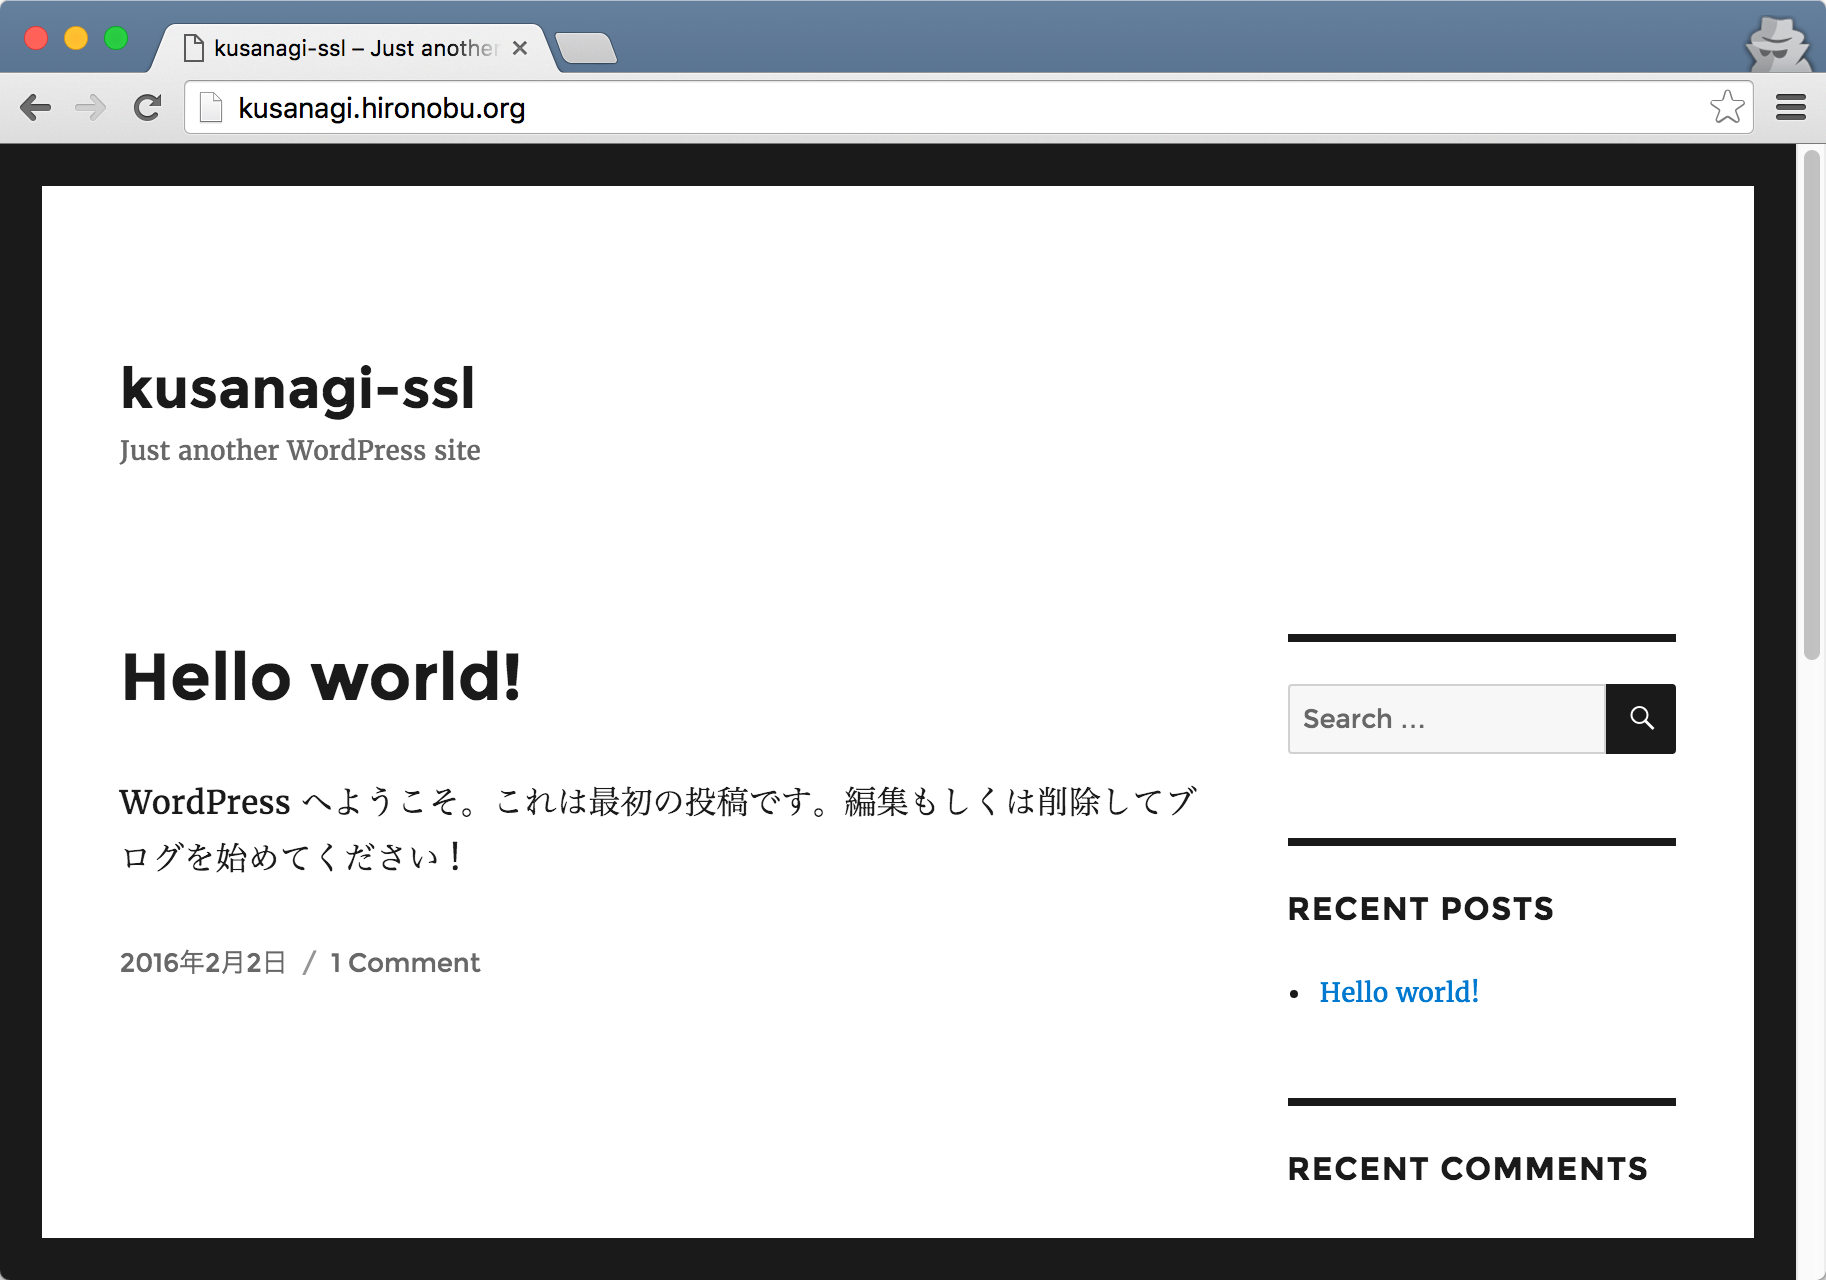 kusanagi-ssl_–_Just_another_WordPress_site.png